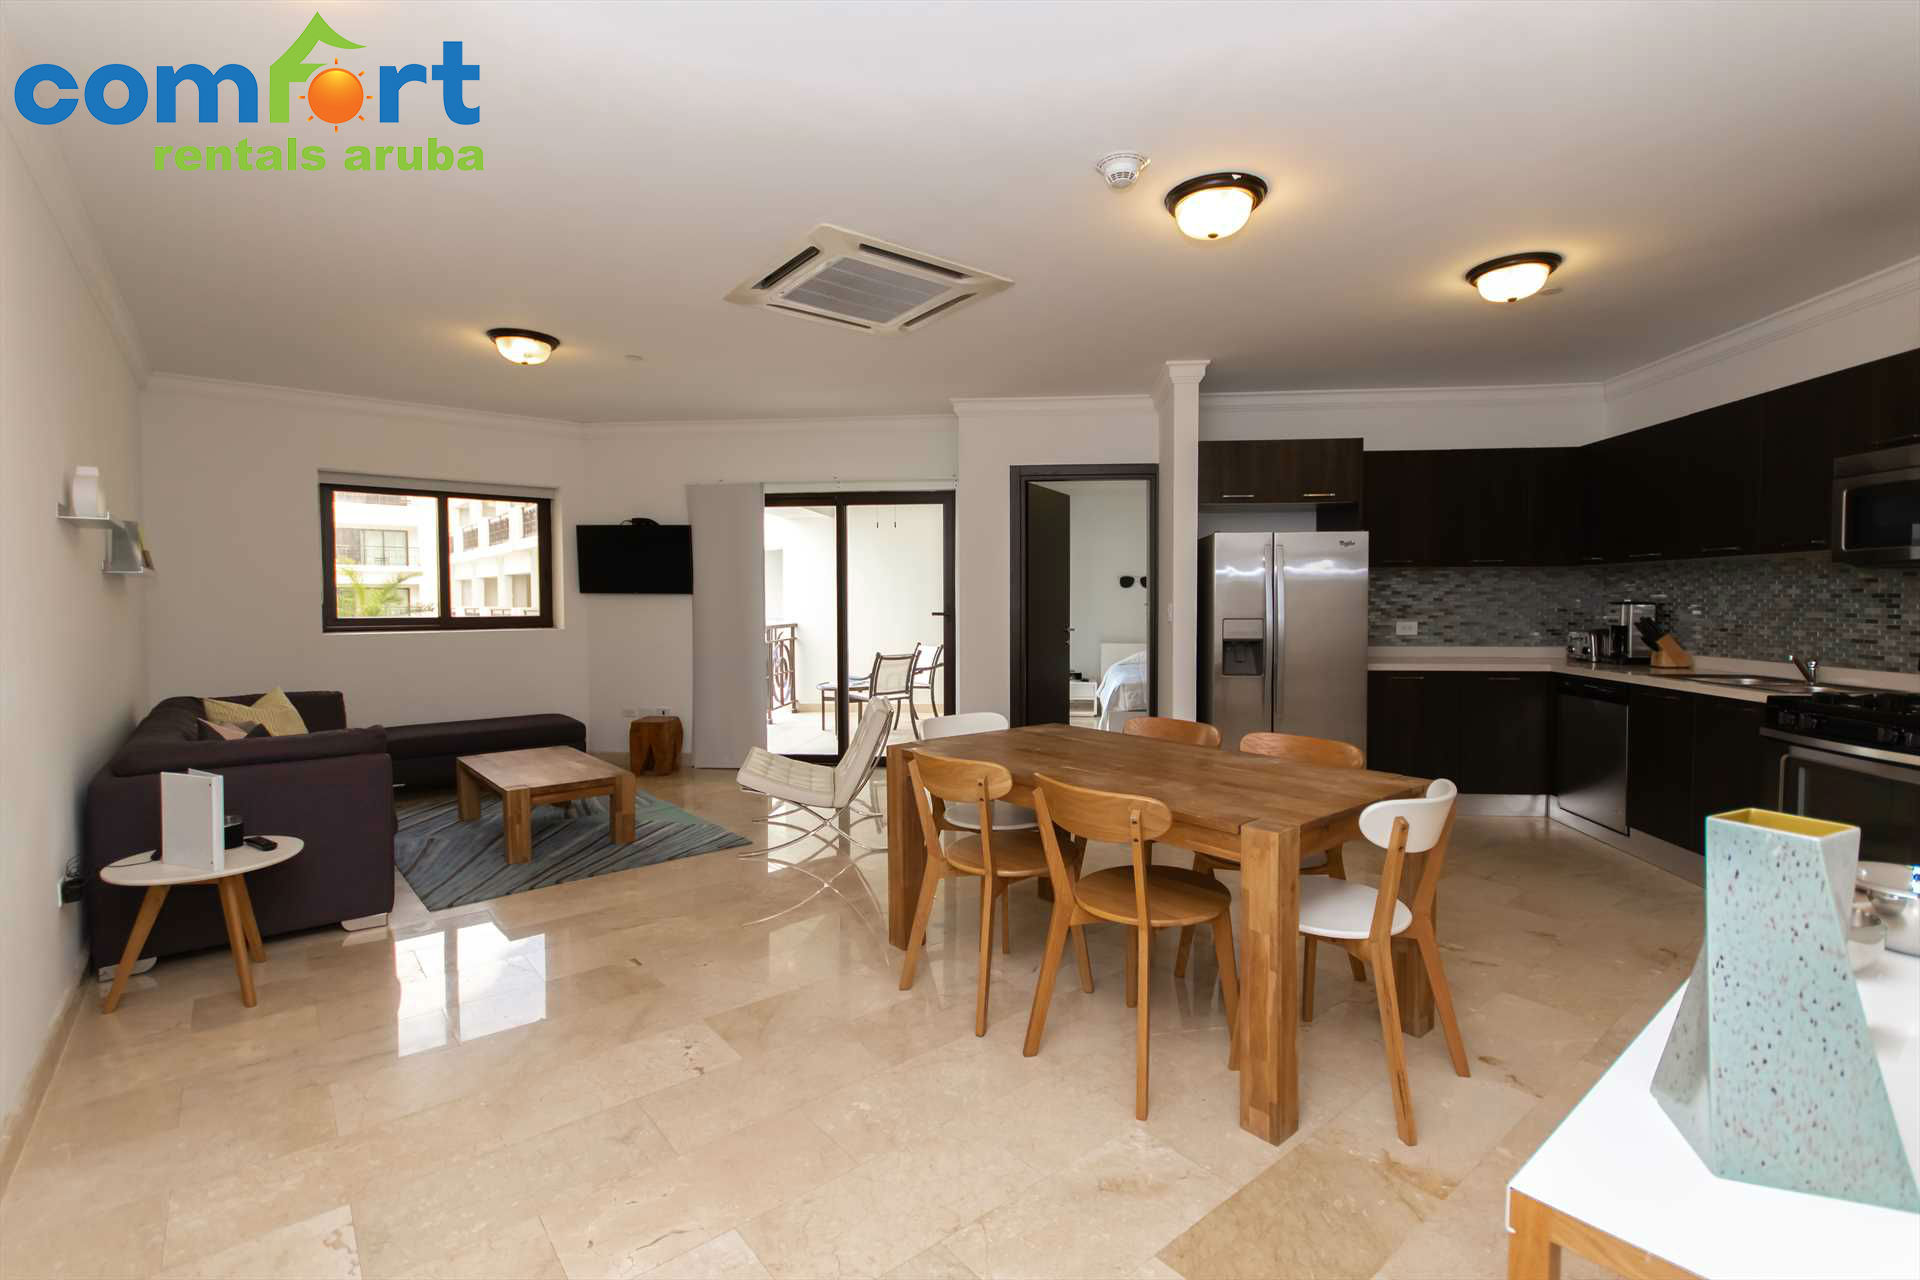 You will surely enjoy the open space in your beautiful condo